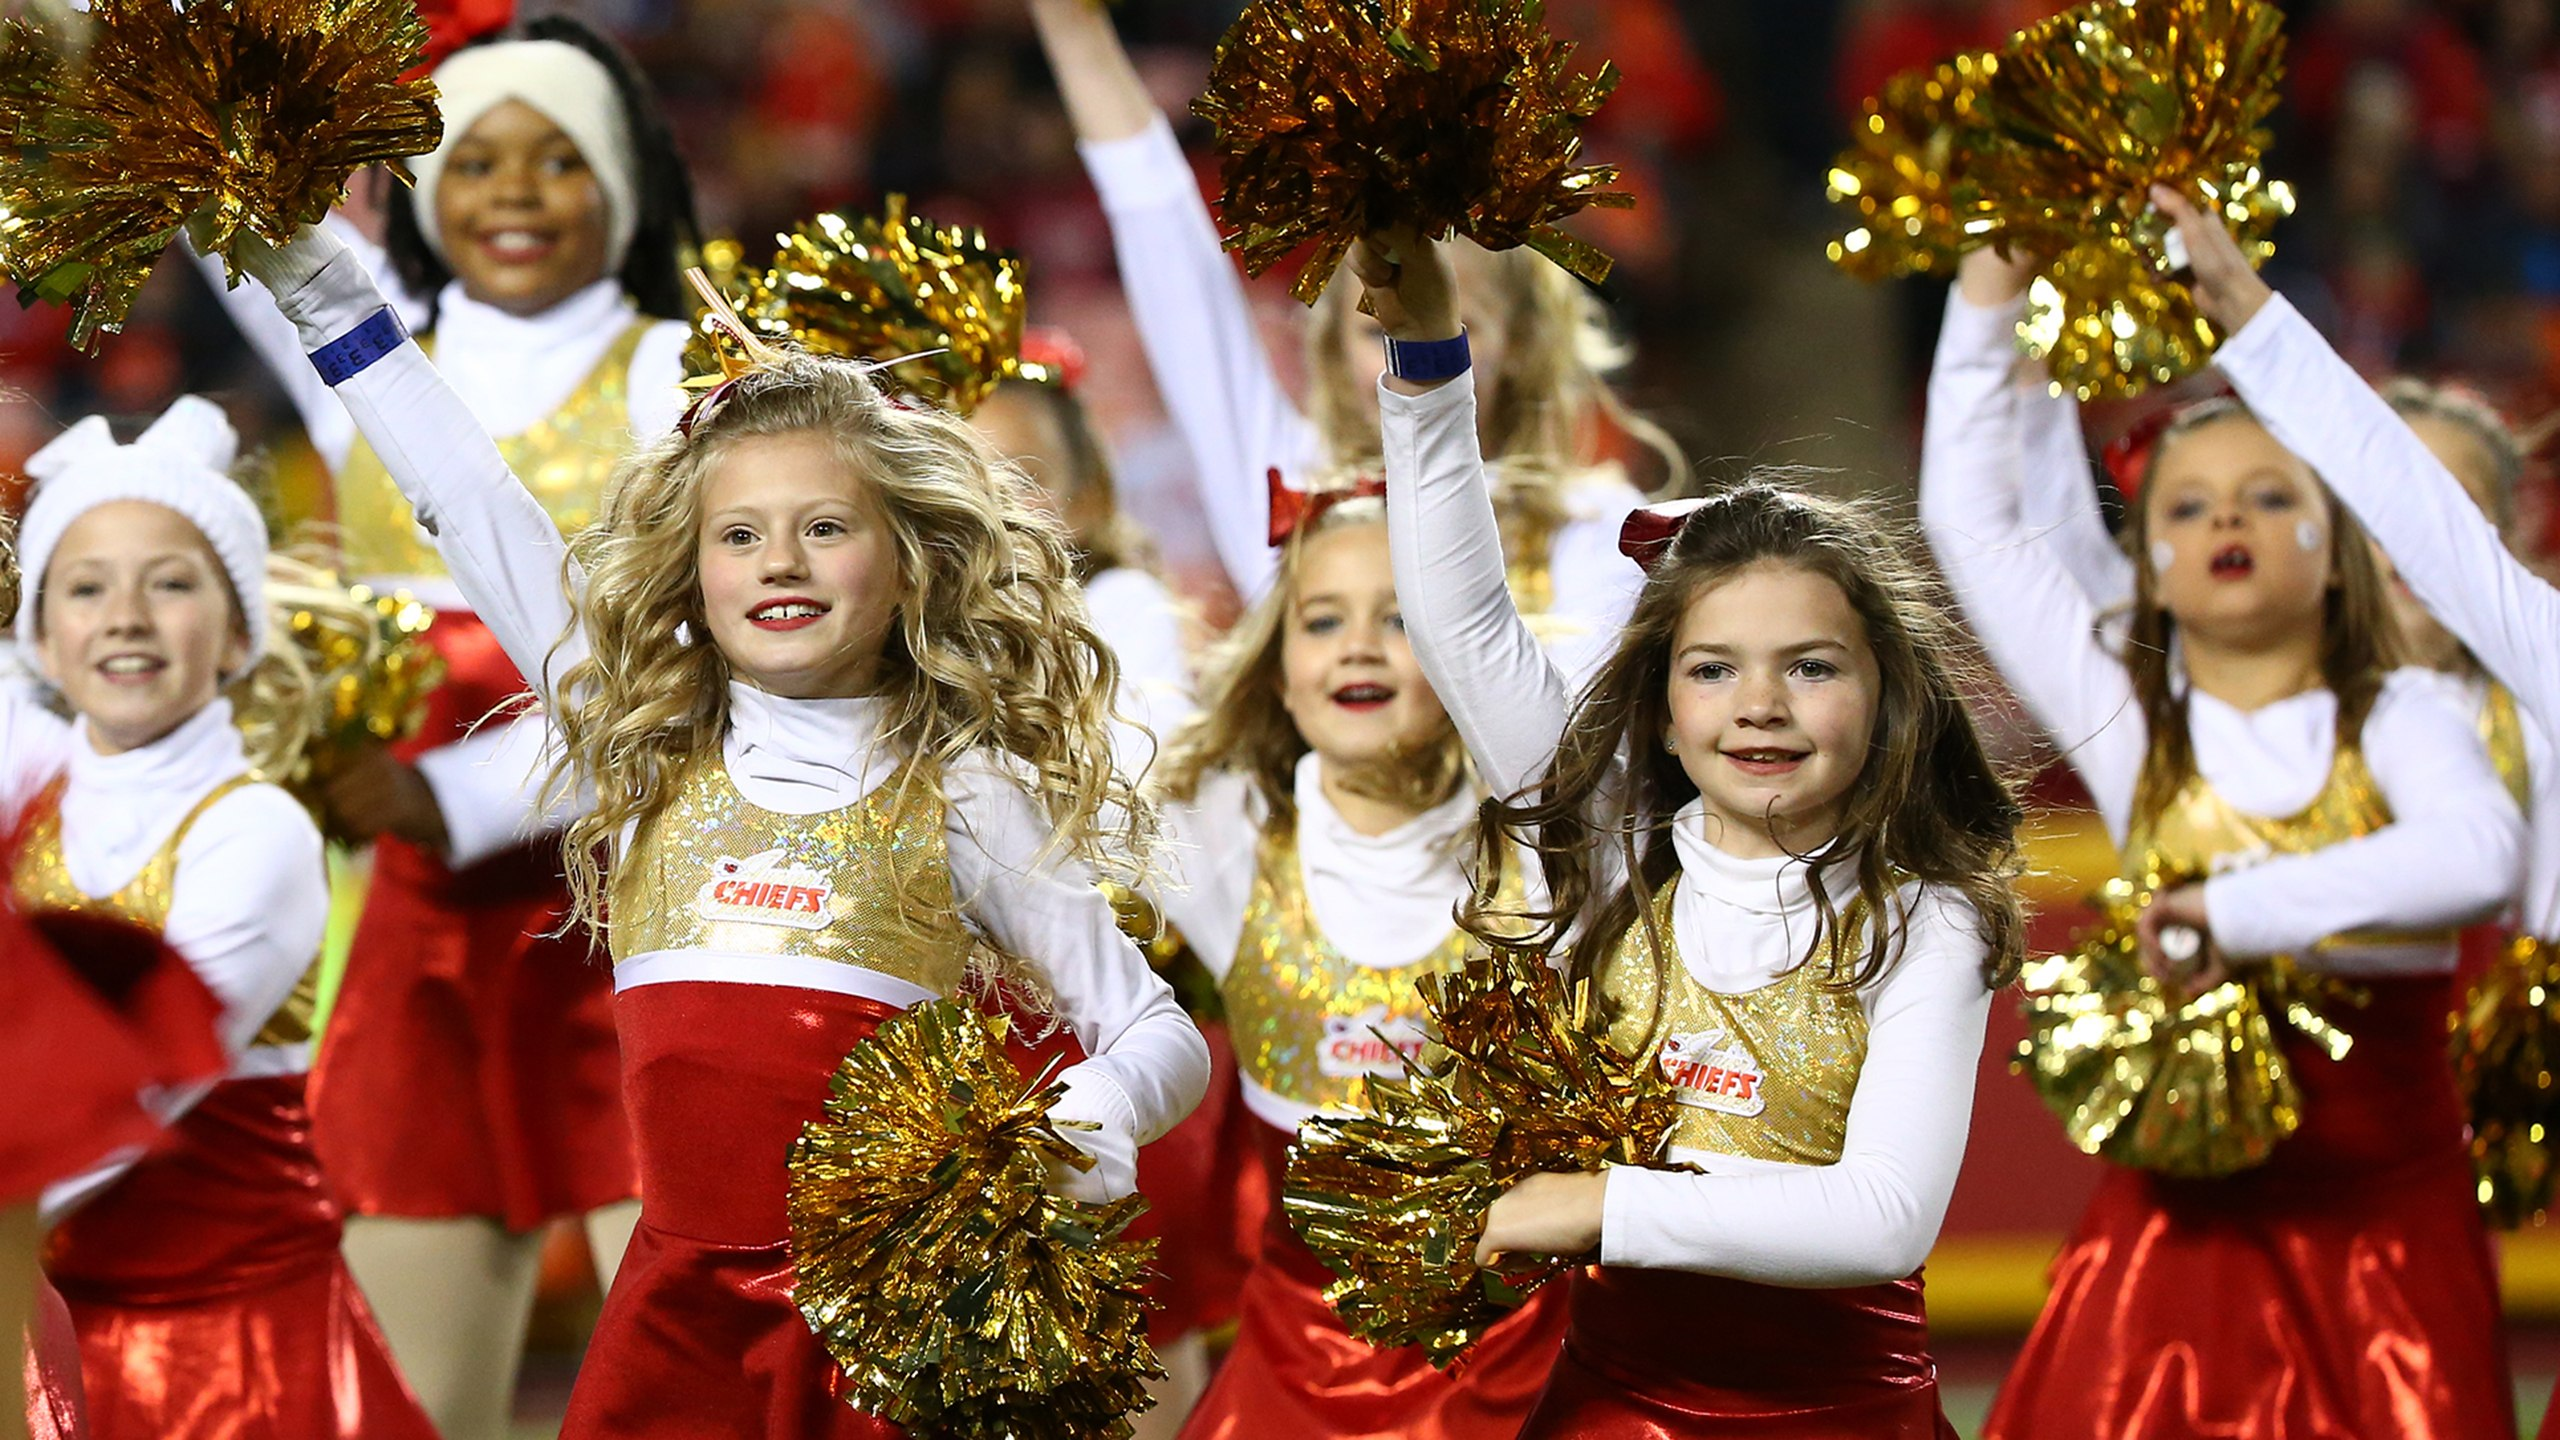 The 2019 Junior Chiefs Cheerleaders Program will launch in May '19. Please sign up for our Mailing List to receive details when the 2019 Program launches.